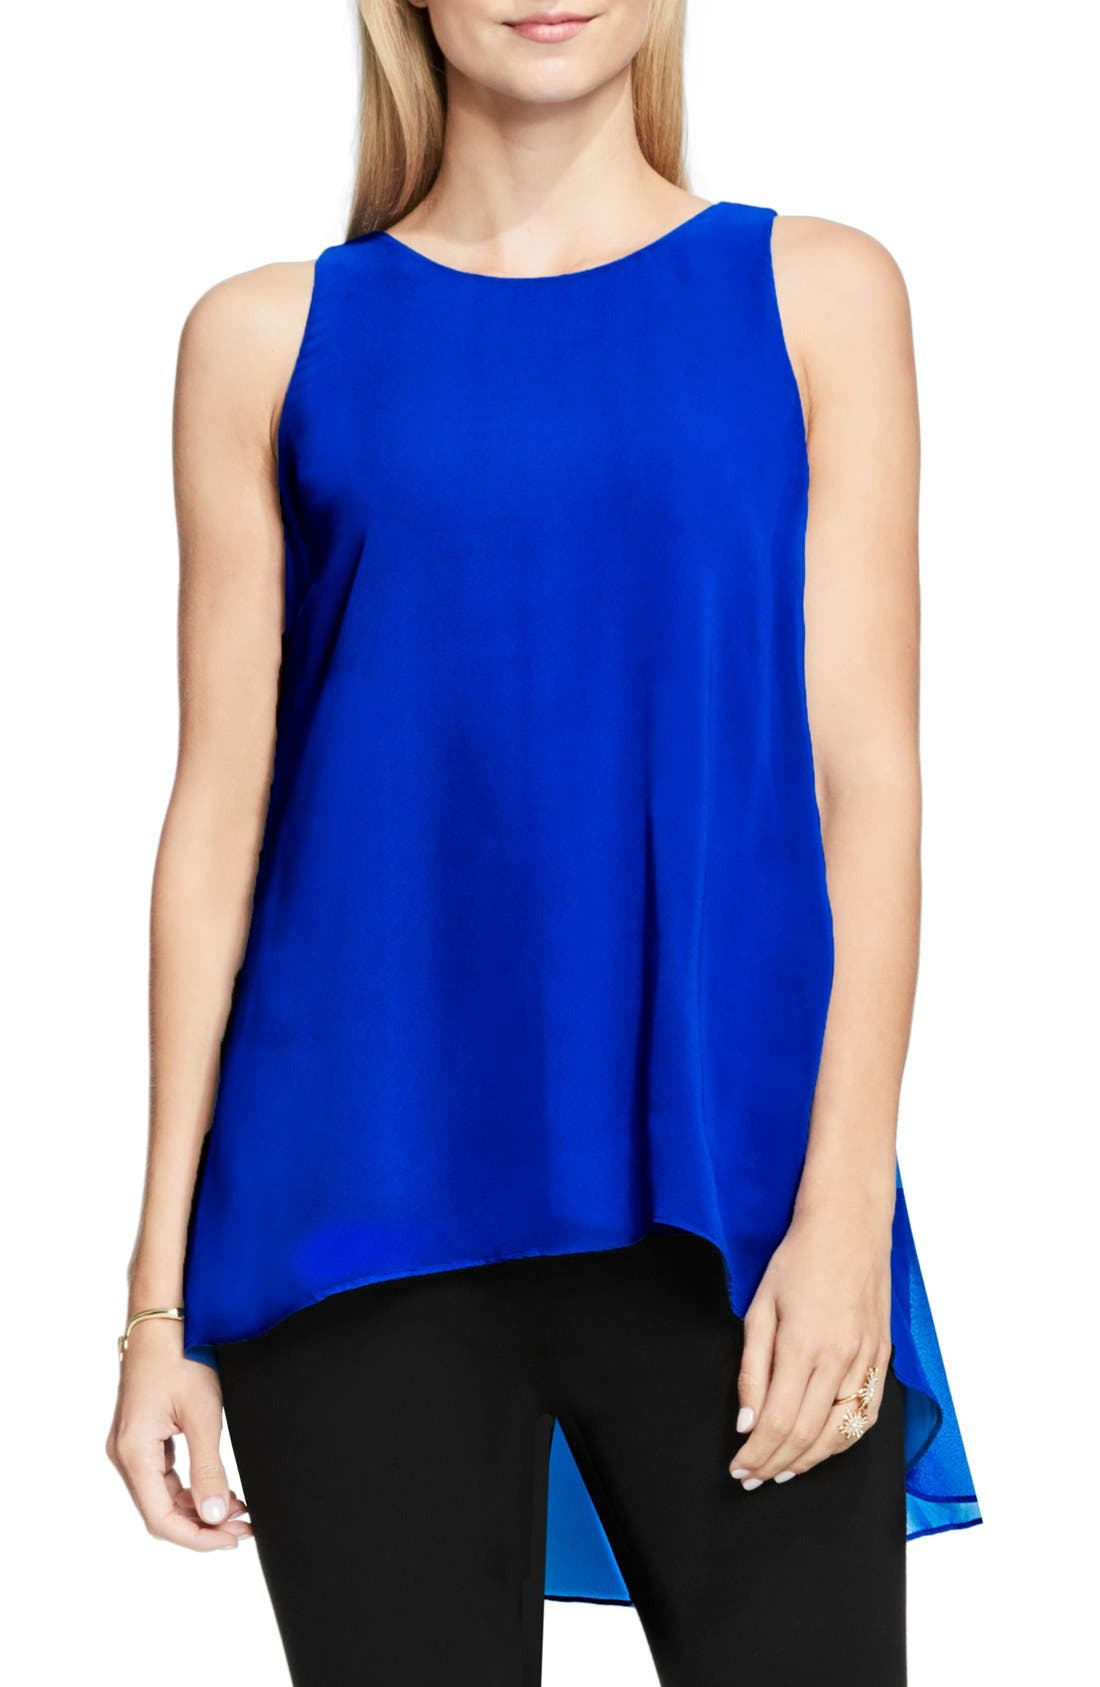 Alternate Image 1 Selected - Vince Camuto Sleeveless Crepe High/Low Top (Petite)